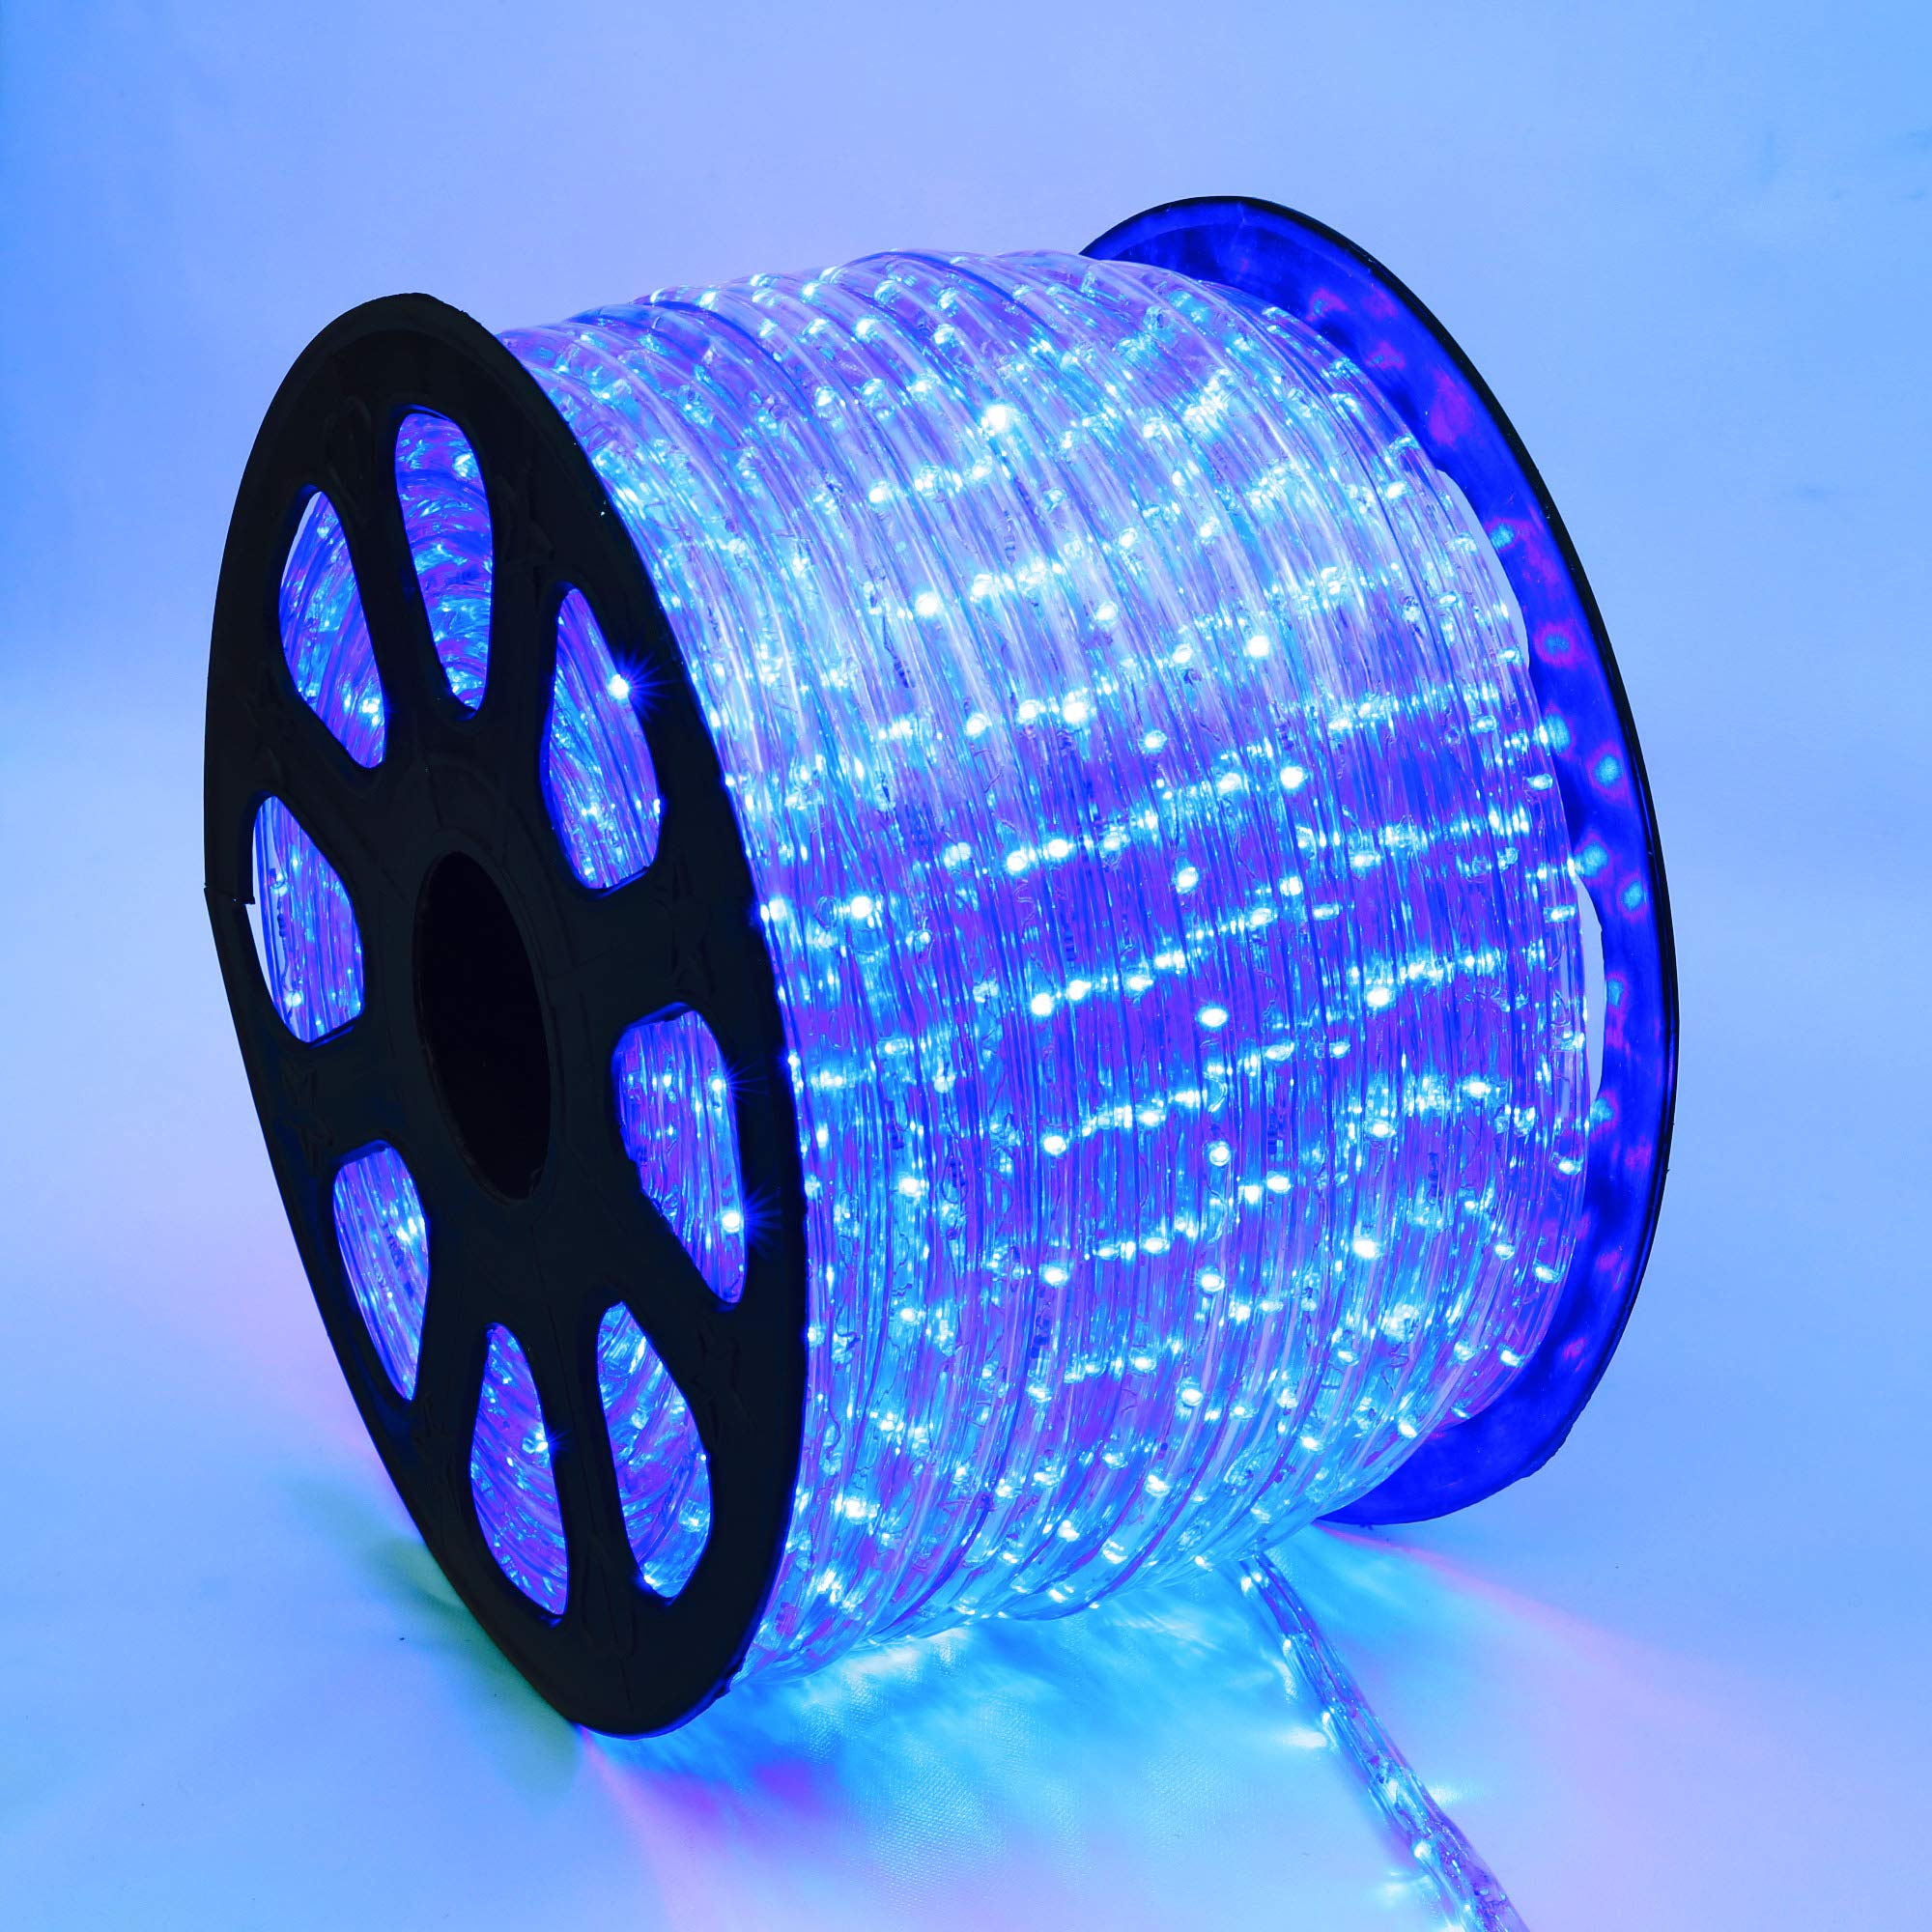 WYZworks 300 ft of Blue PRE-Assembled LED Rope Lights - 2 Wire Christmas Holiday Decoration Indoor/Outdoor Lighting | UL Certified